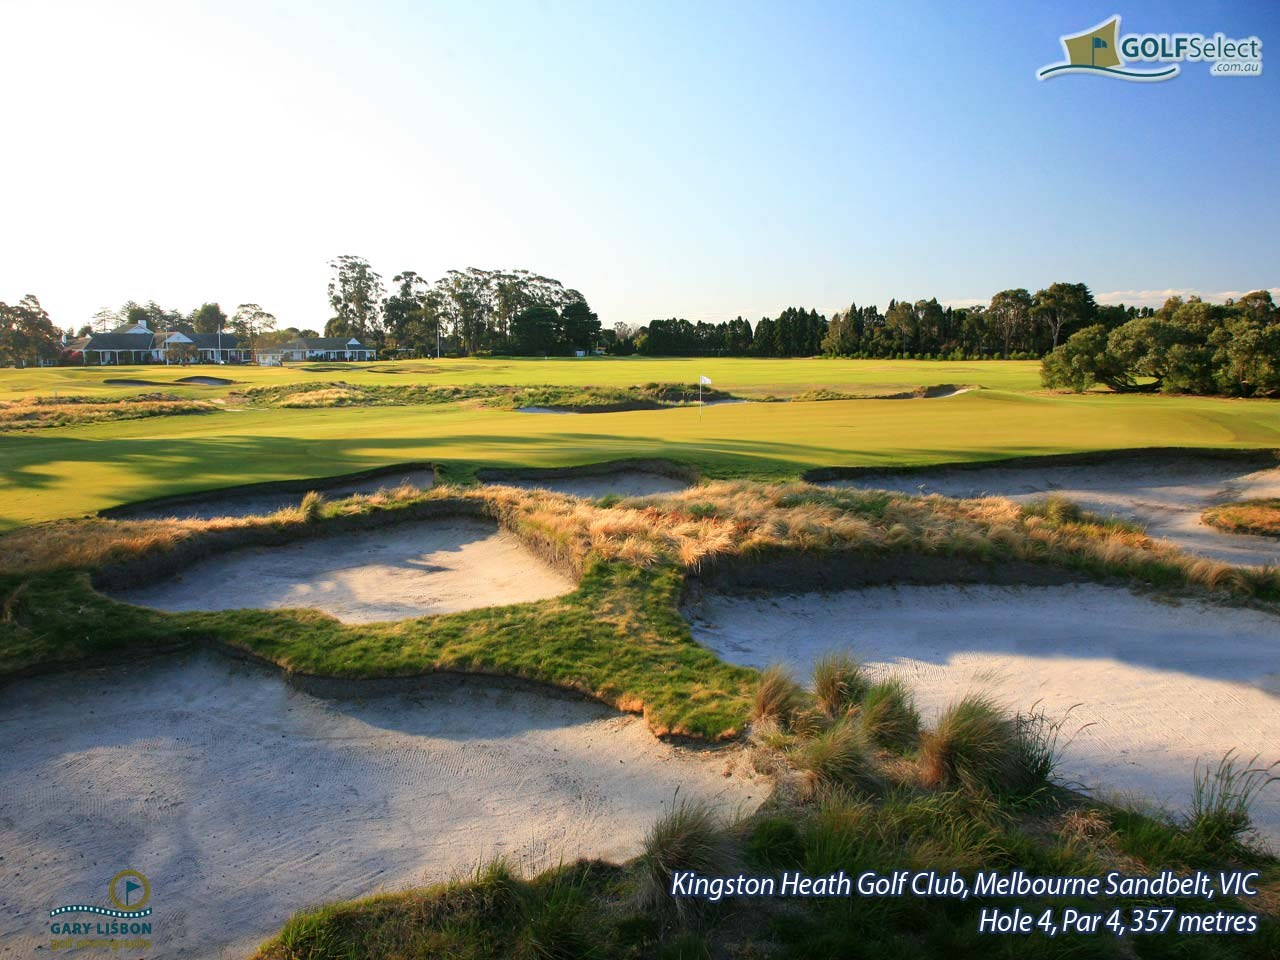 Kingston Heath Golf Club Hole 4, Par 4, 357 metres